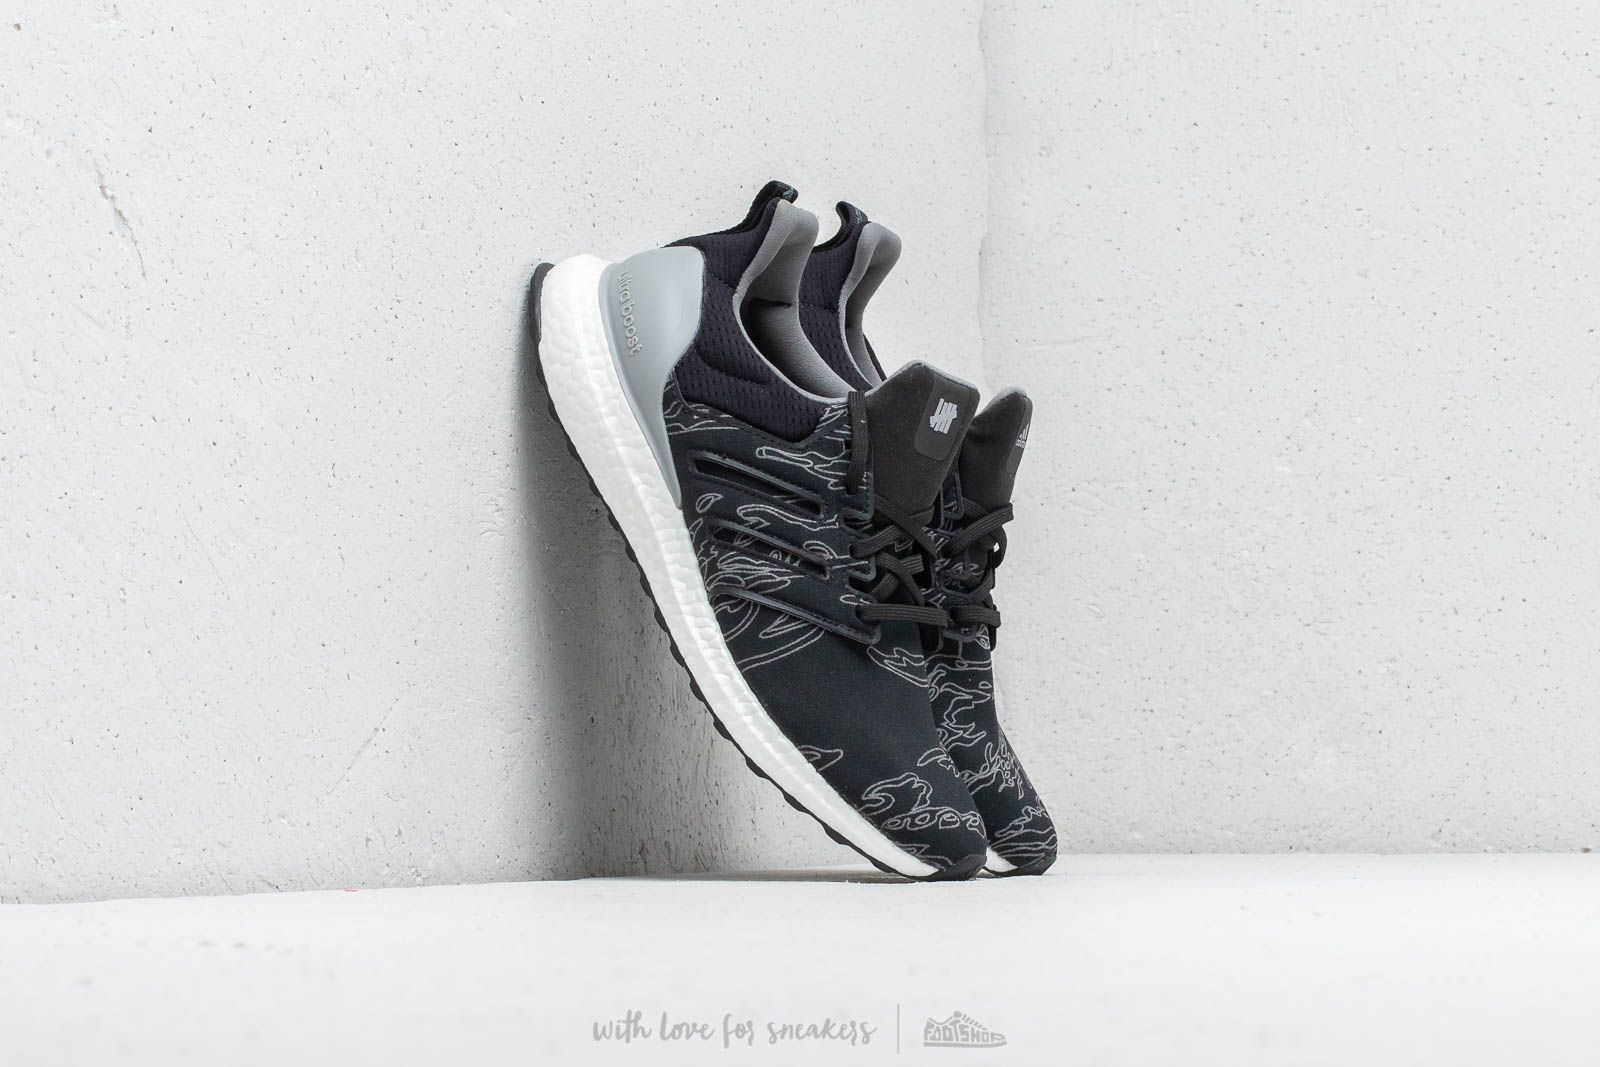 93bf9ccea25 adidas x Undefeated UltraBOOST Core Black  Core Black  Core Black at a  great price